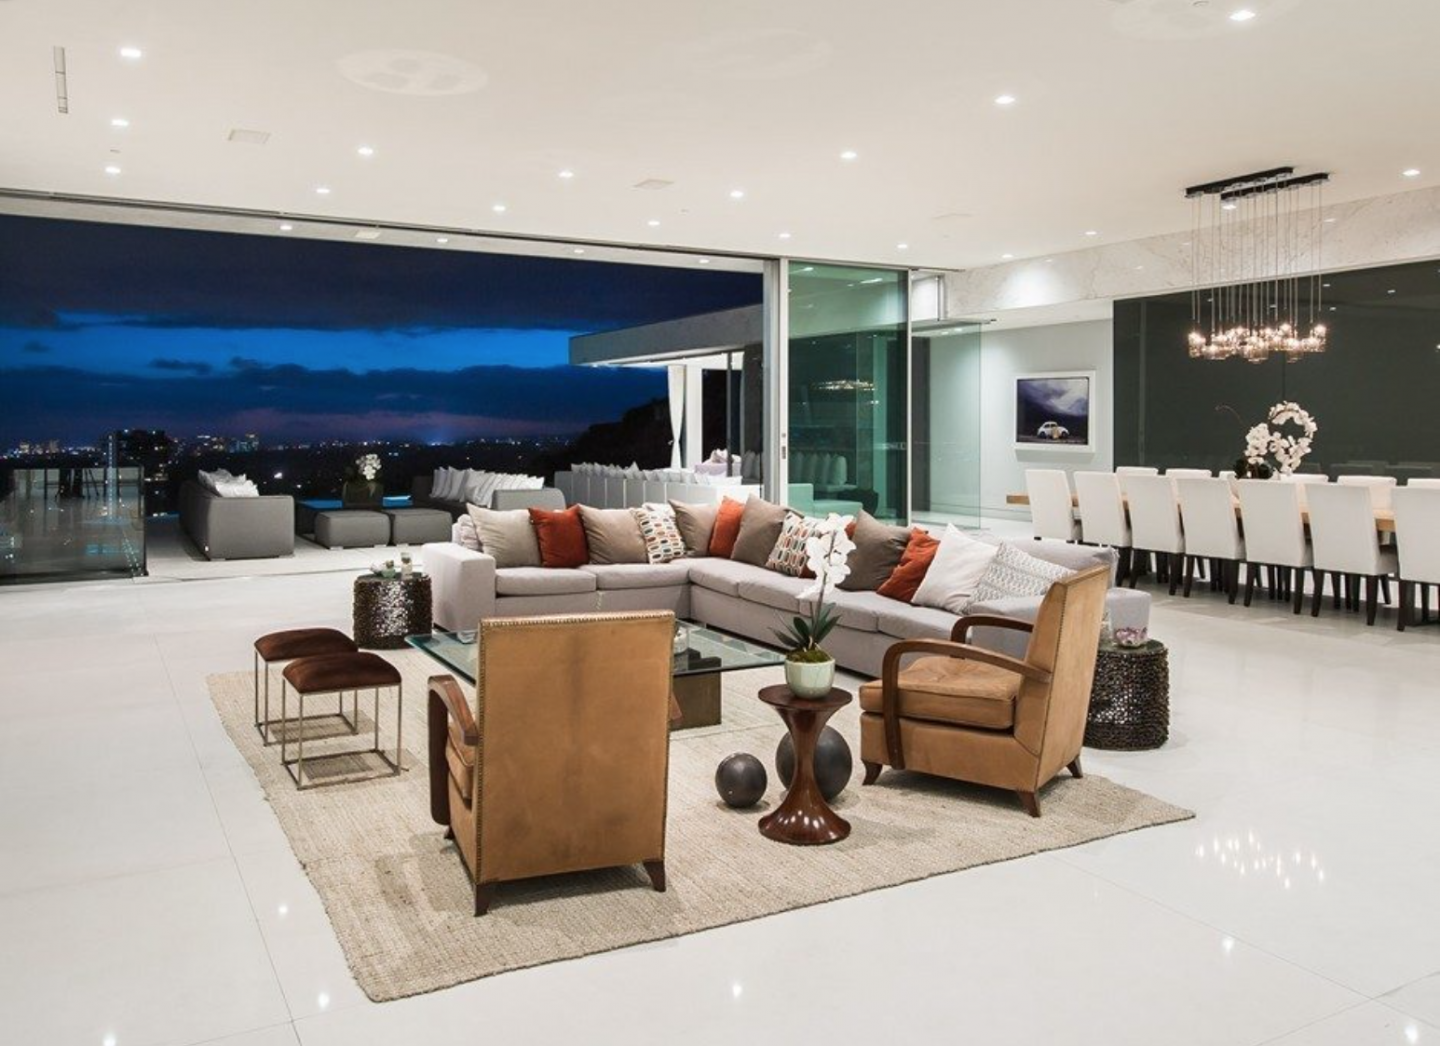 The home opens up to allow breezy night air to flow through the house.